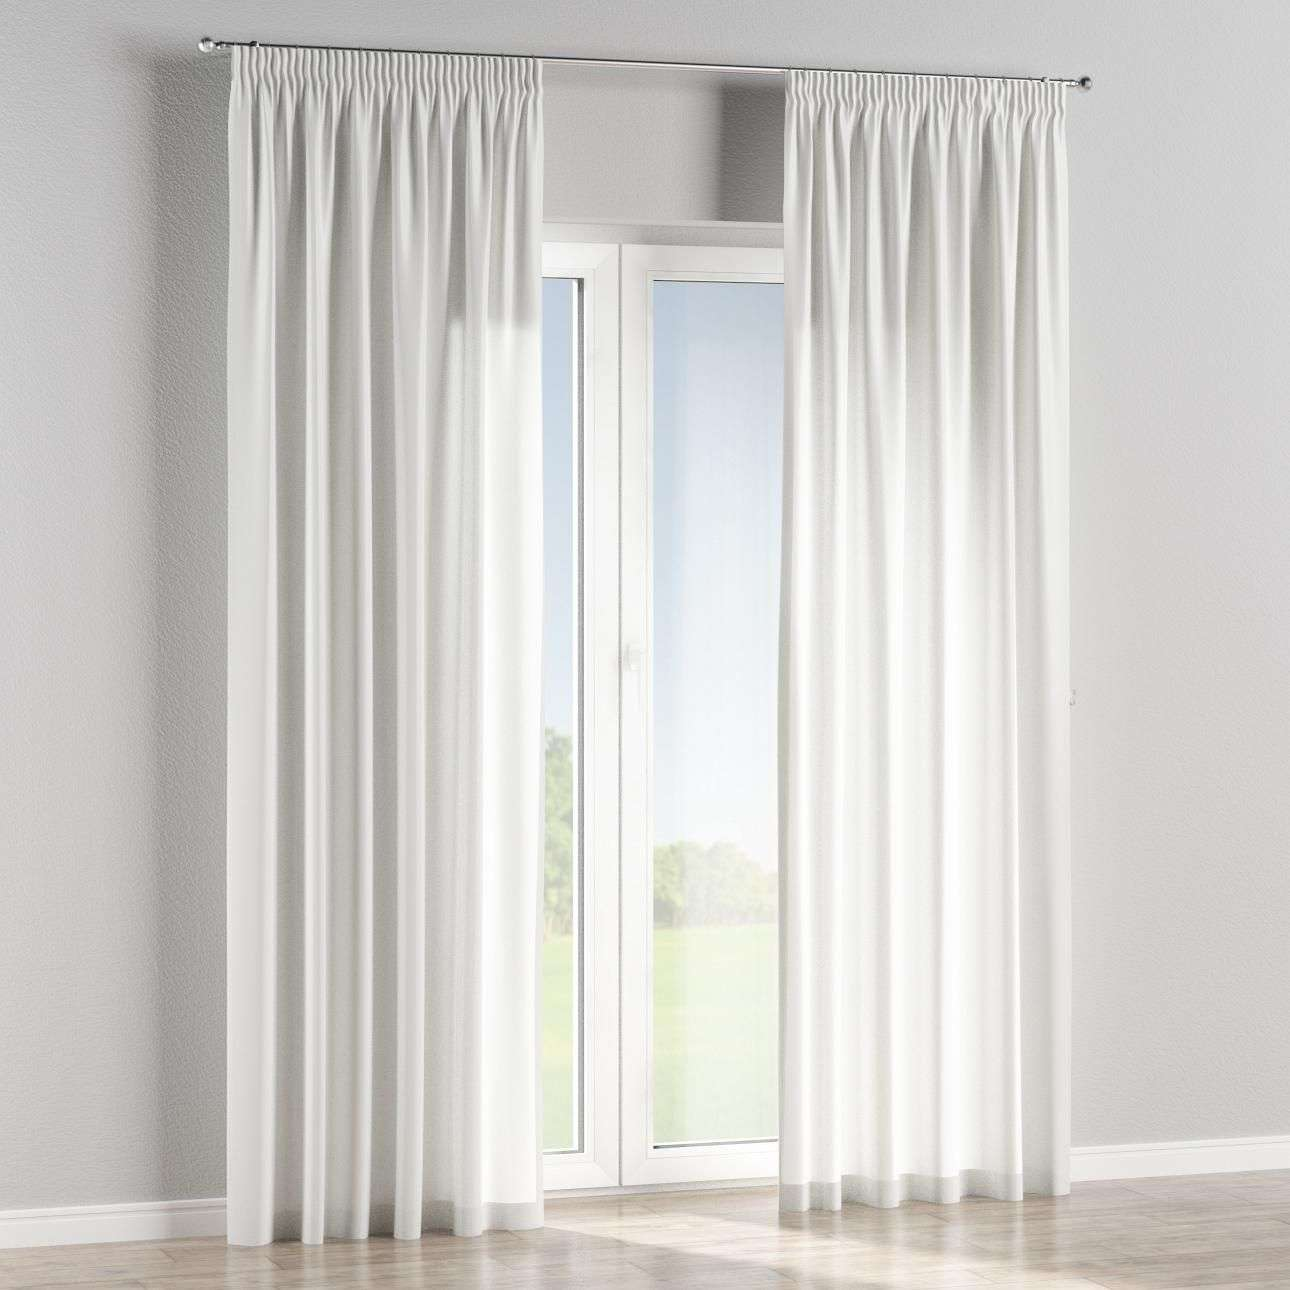 Pencil pleat lined curtains in collection Aquarelle, fabric: 140-68